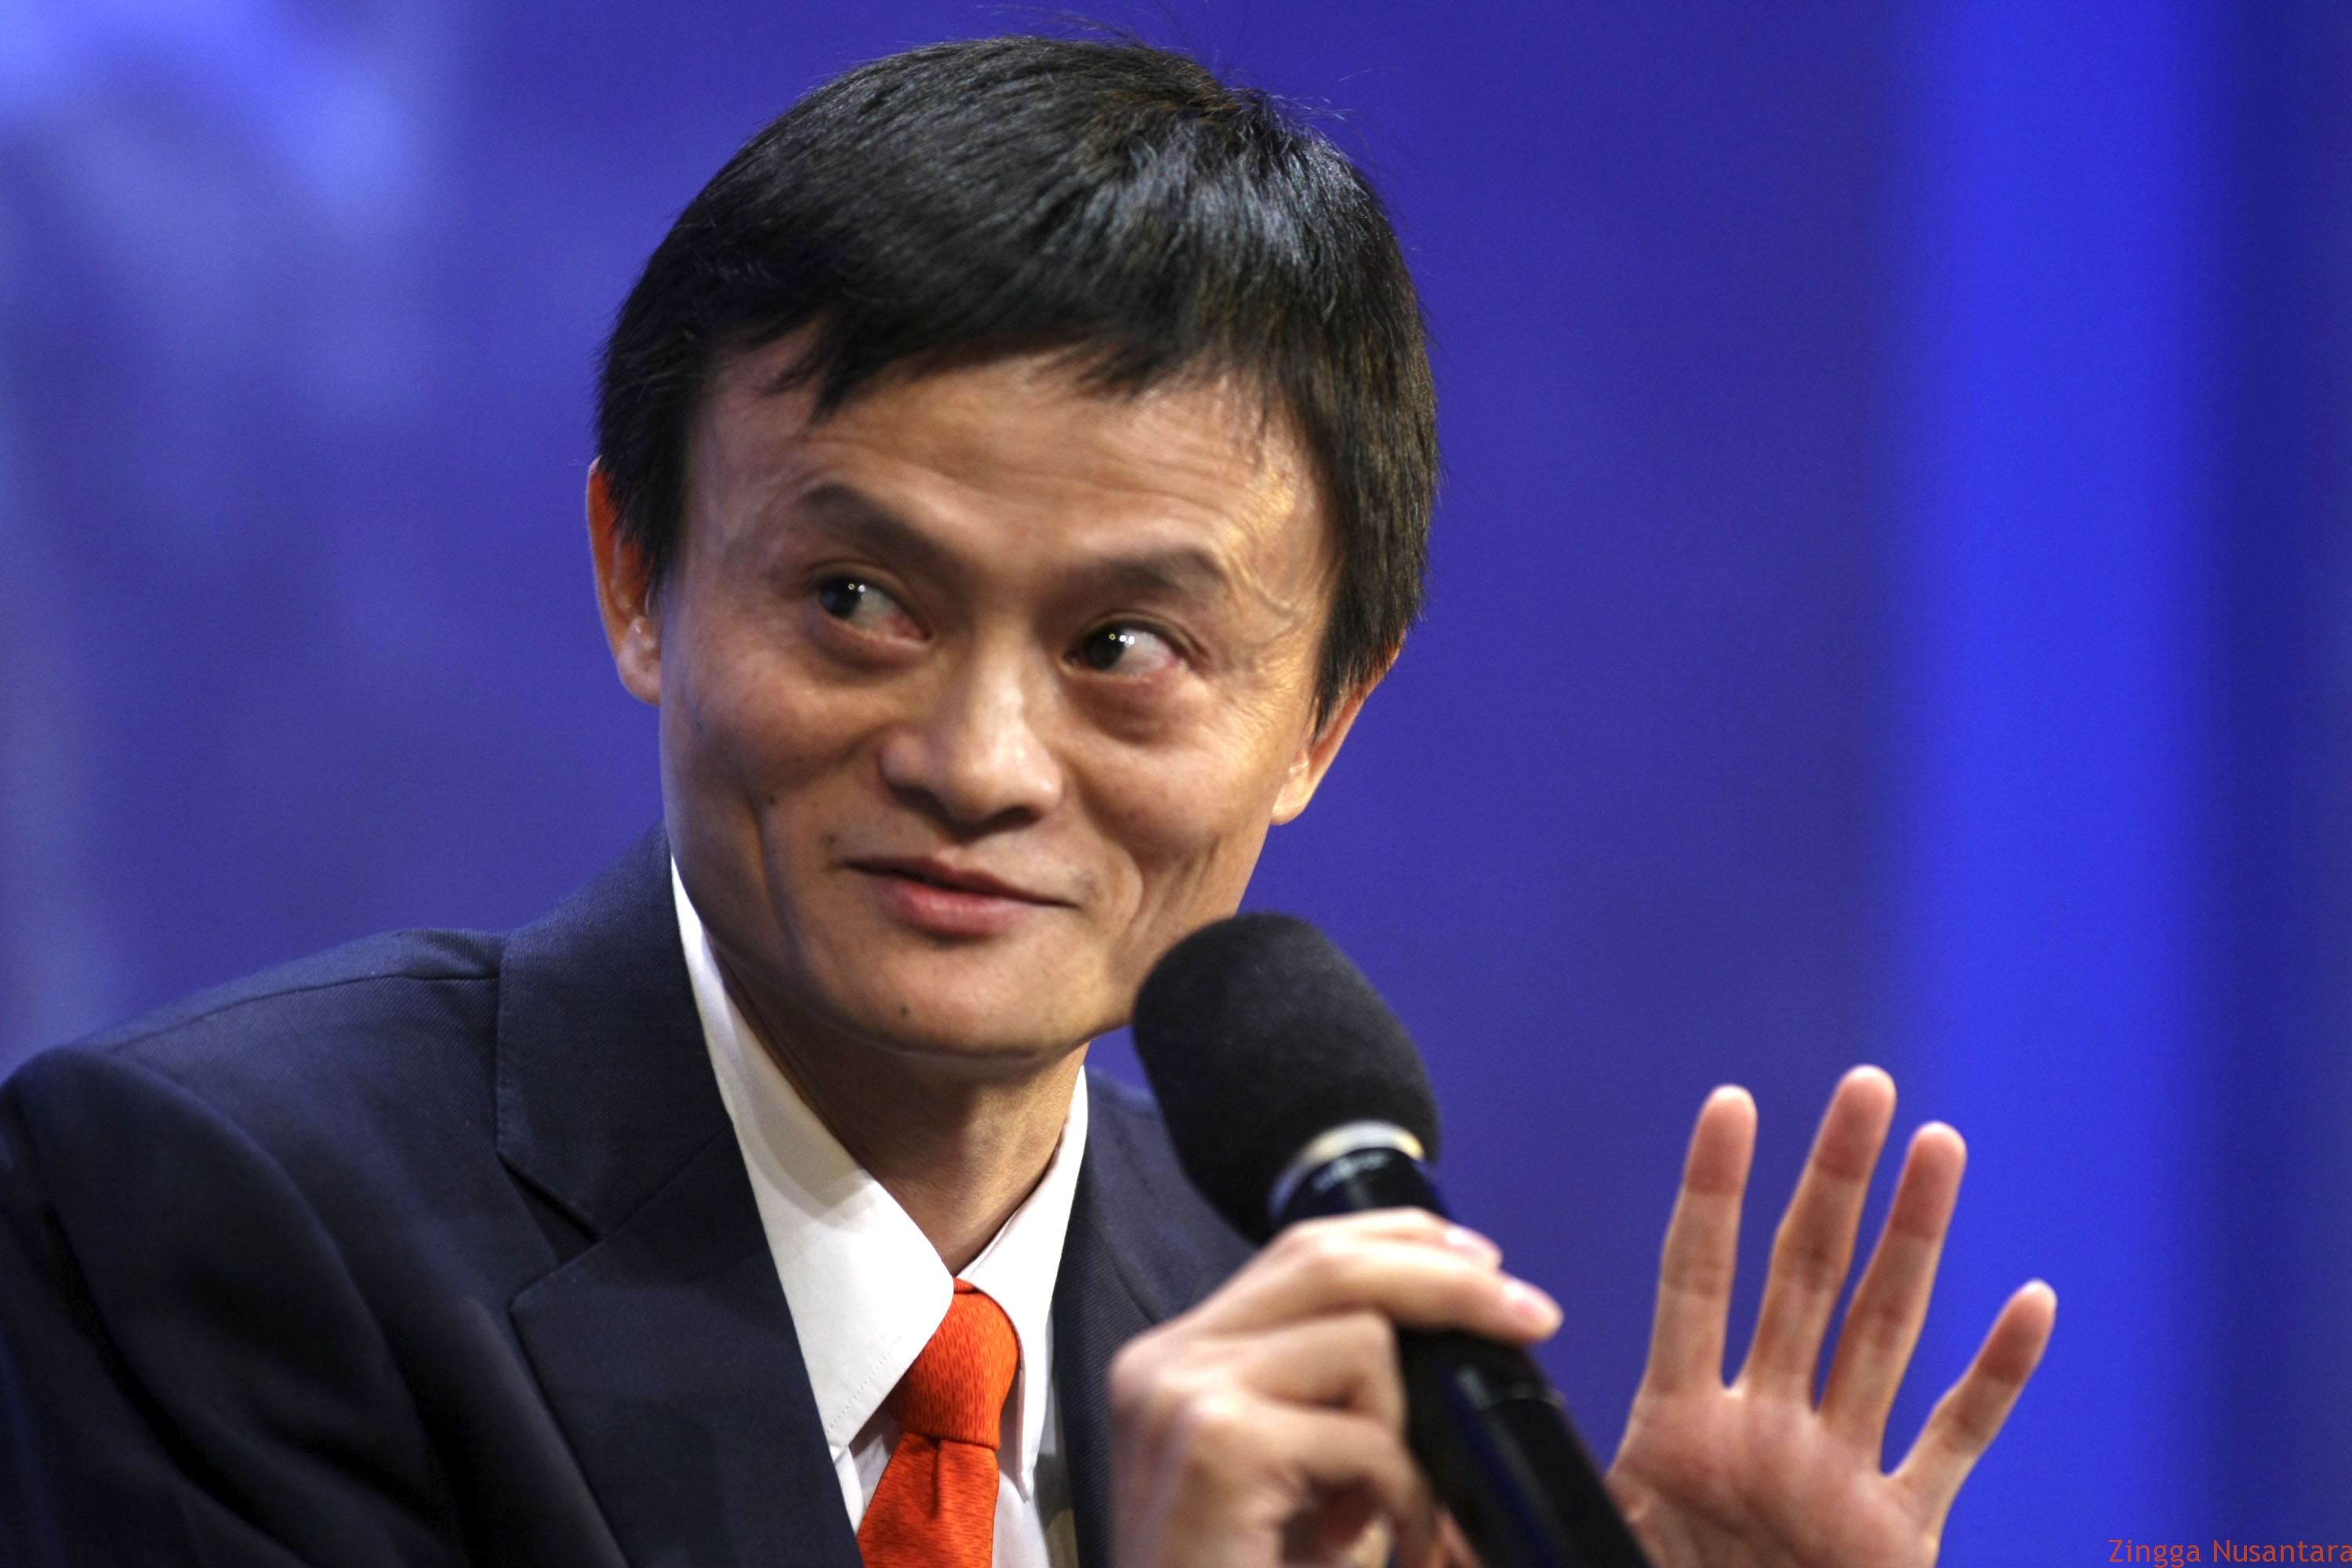 Jack Ma, chairman and chief executive officer of the Alibaba Group yang merupakan orang Tionghoa.